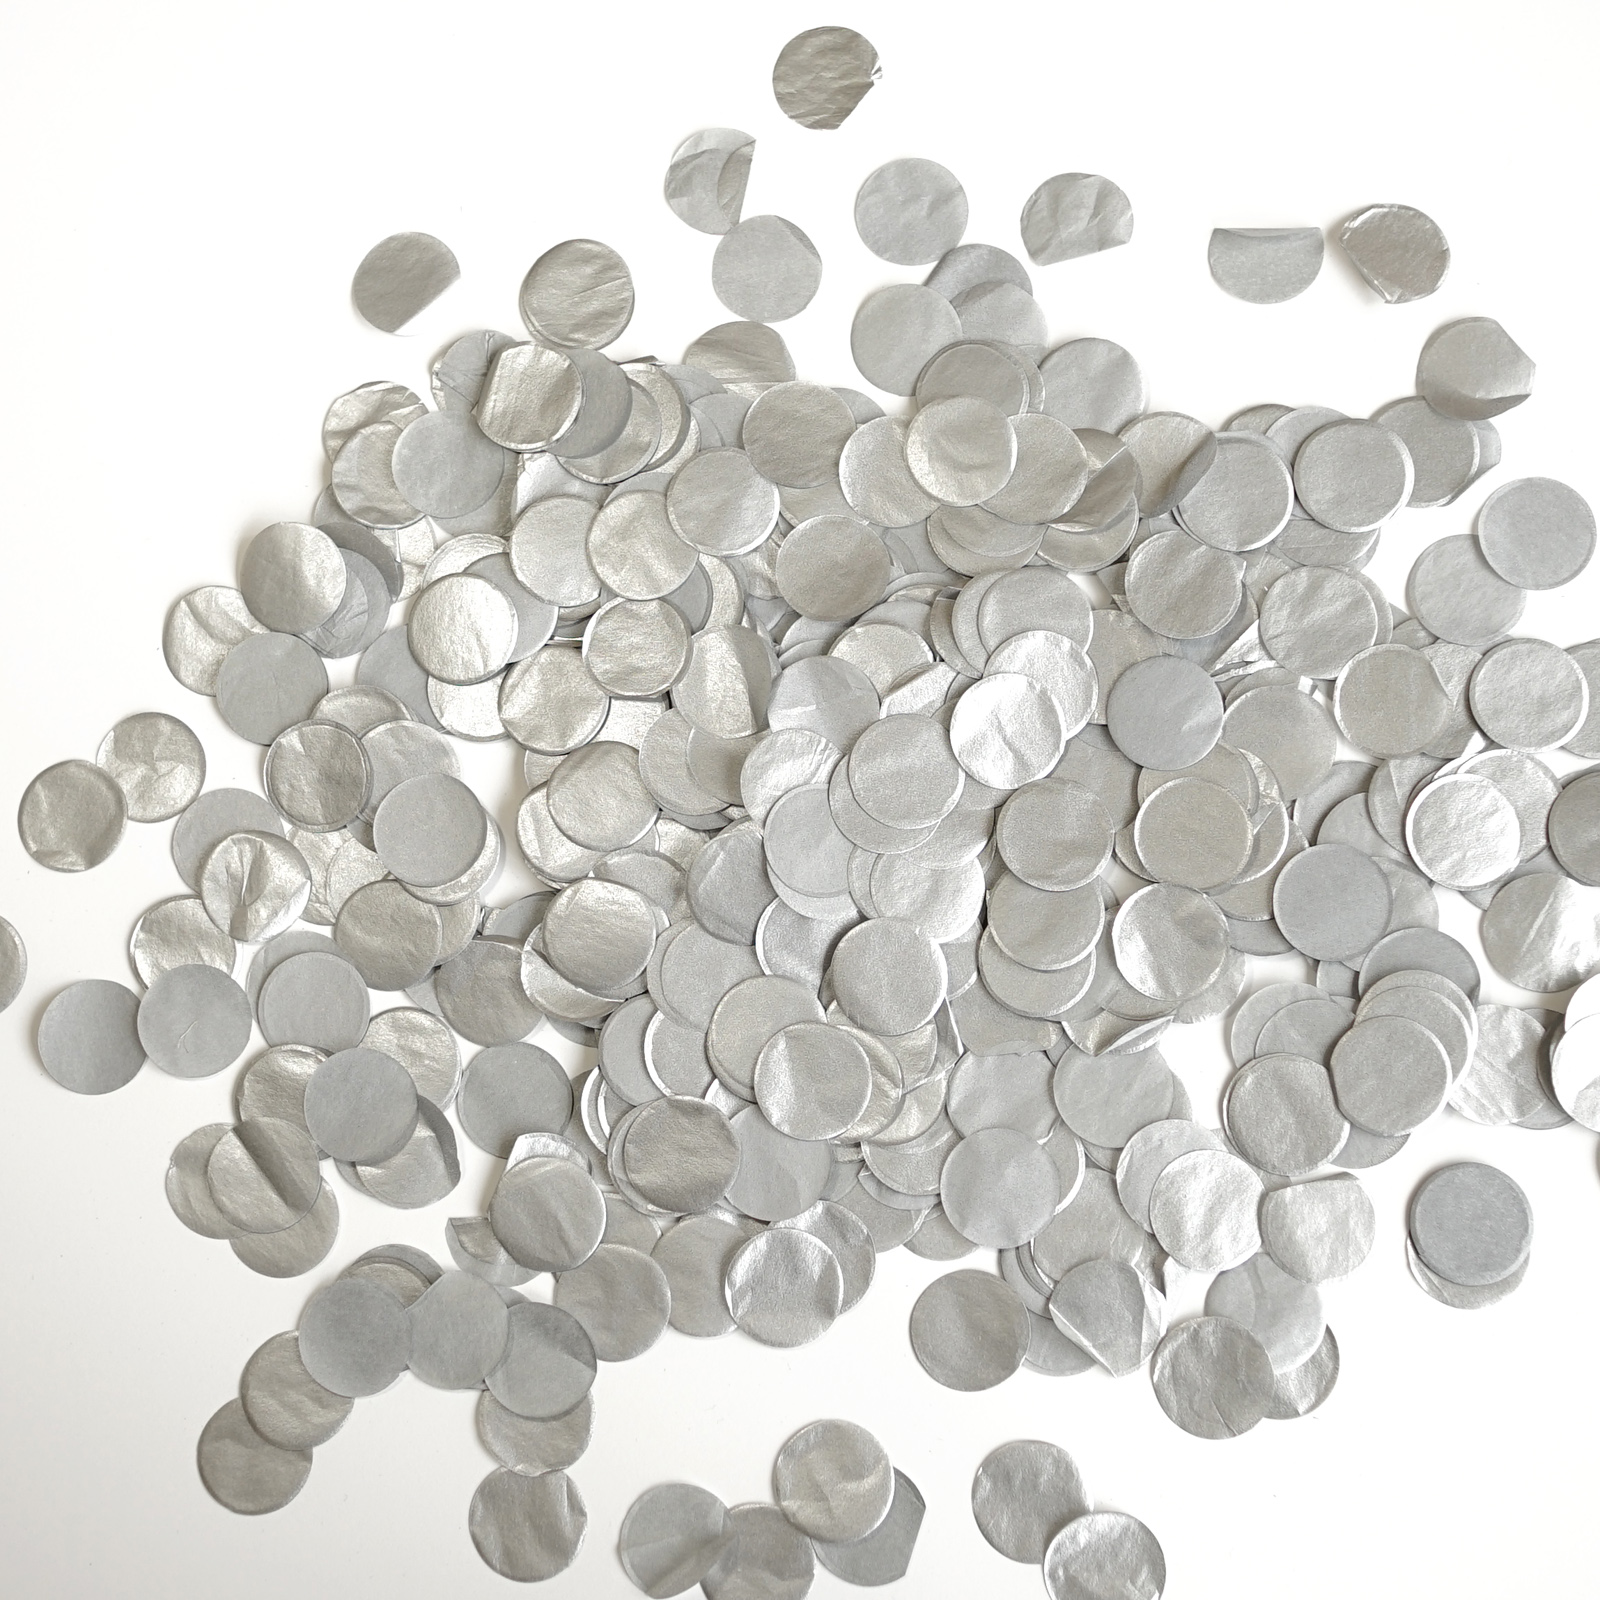 Premium 1-Inch Round Tissue Paper Party Table Confetti - 50 Grams -  Pink, White, Gold Mylar Flakes